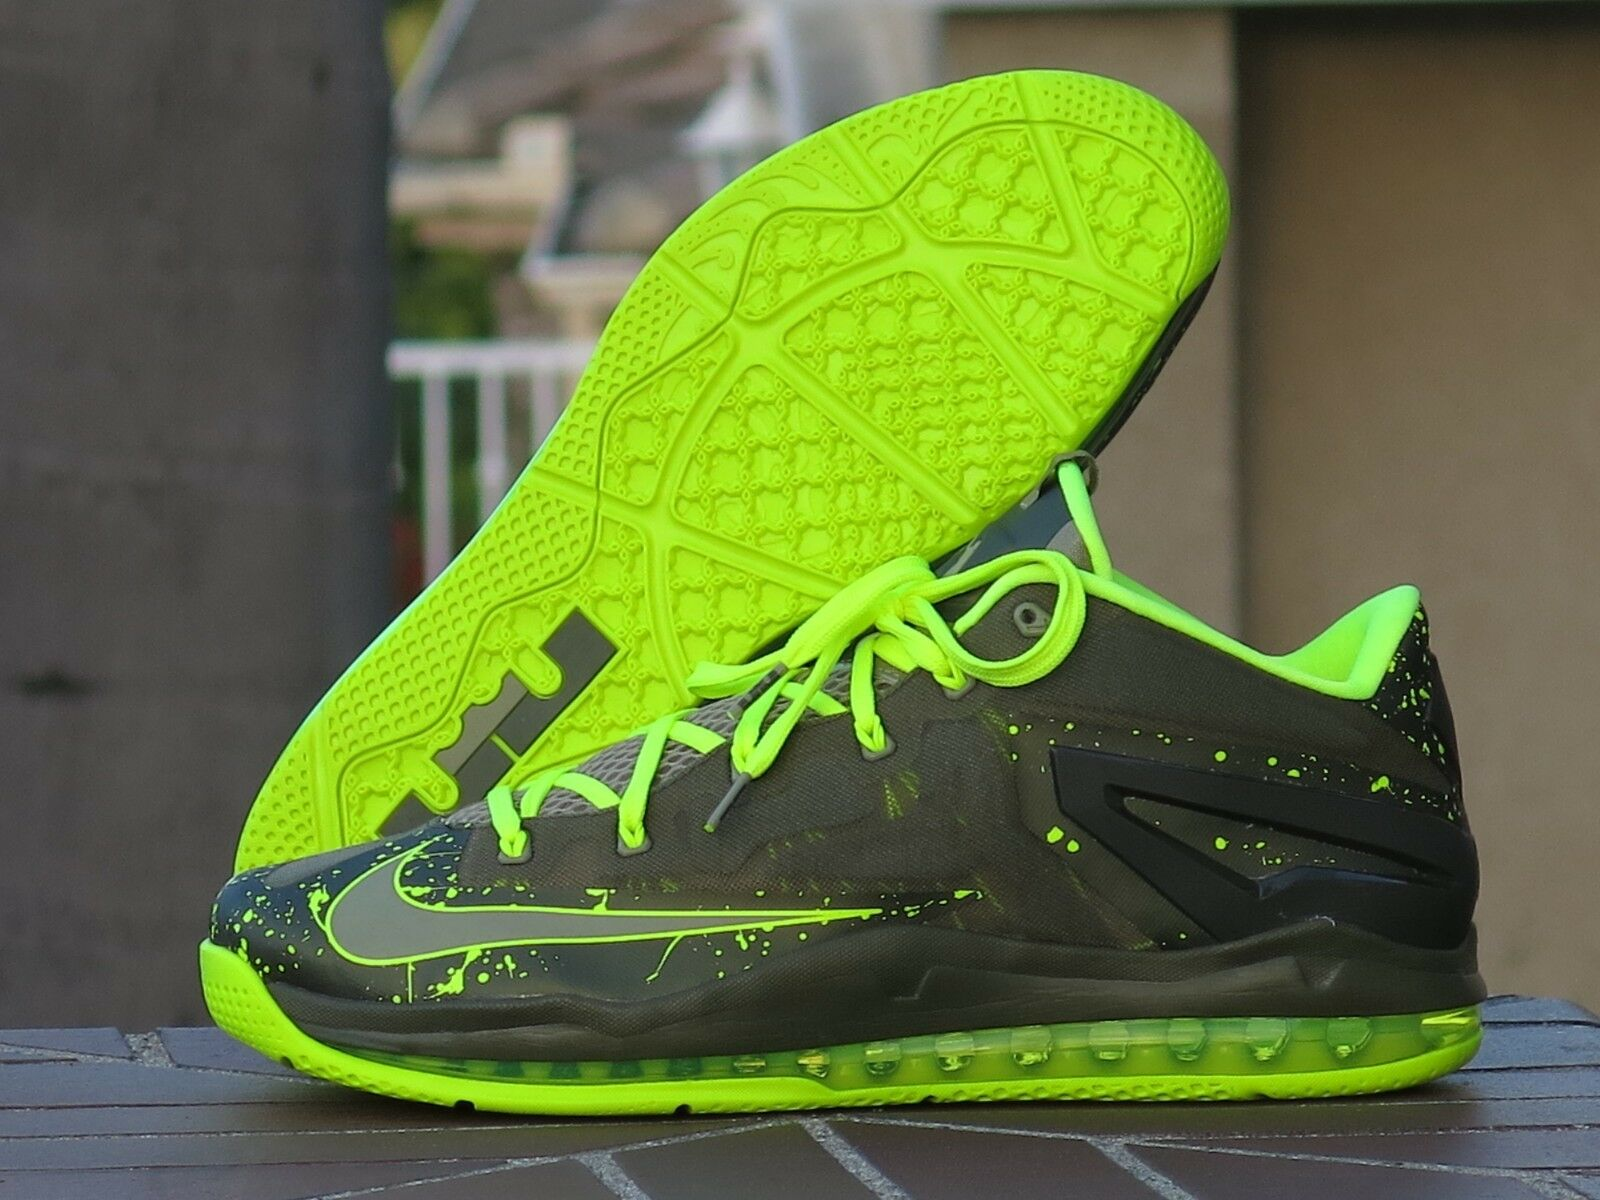 "Nike Lebron XI Low Men's Basketball shoes ""Dunkman""642849-200"